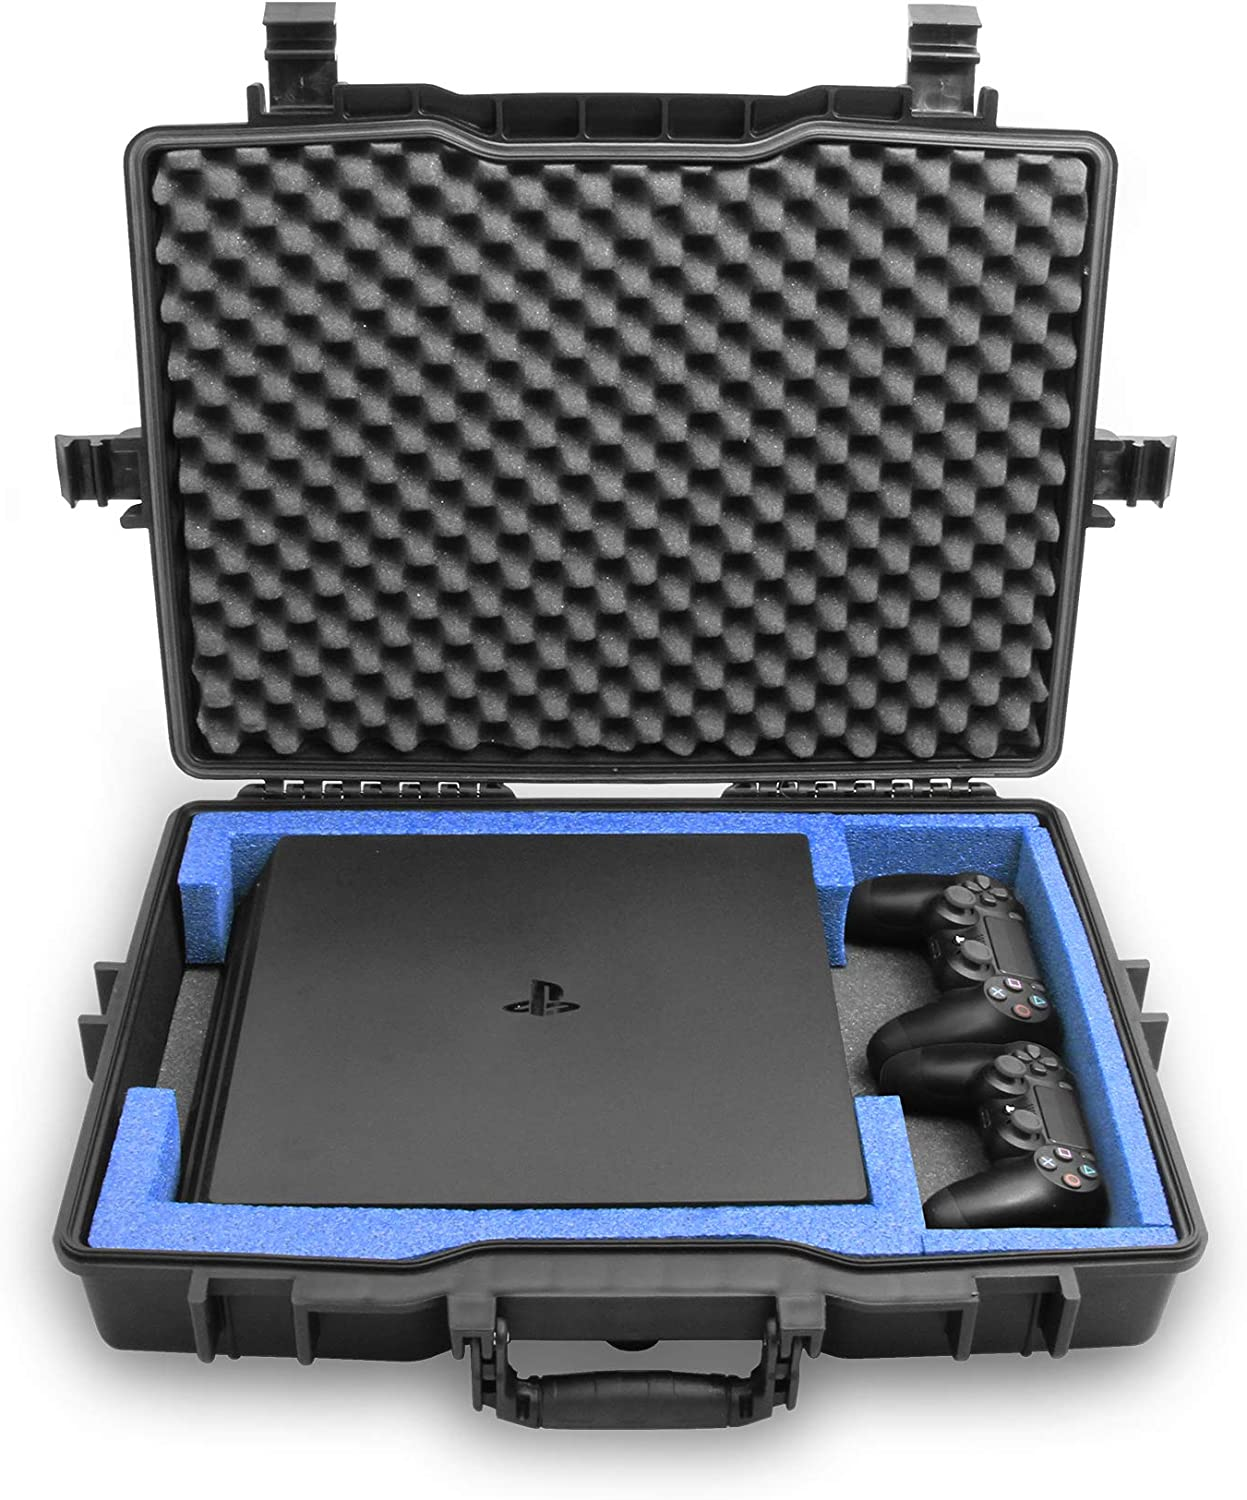 Casematix Waterproof PS4 Carrying Case Compatible with Playstation 4 Pro 1TB Console, PS4 pro Dual Shock Controllers and Cables, Includes Case Only